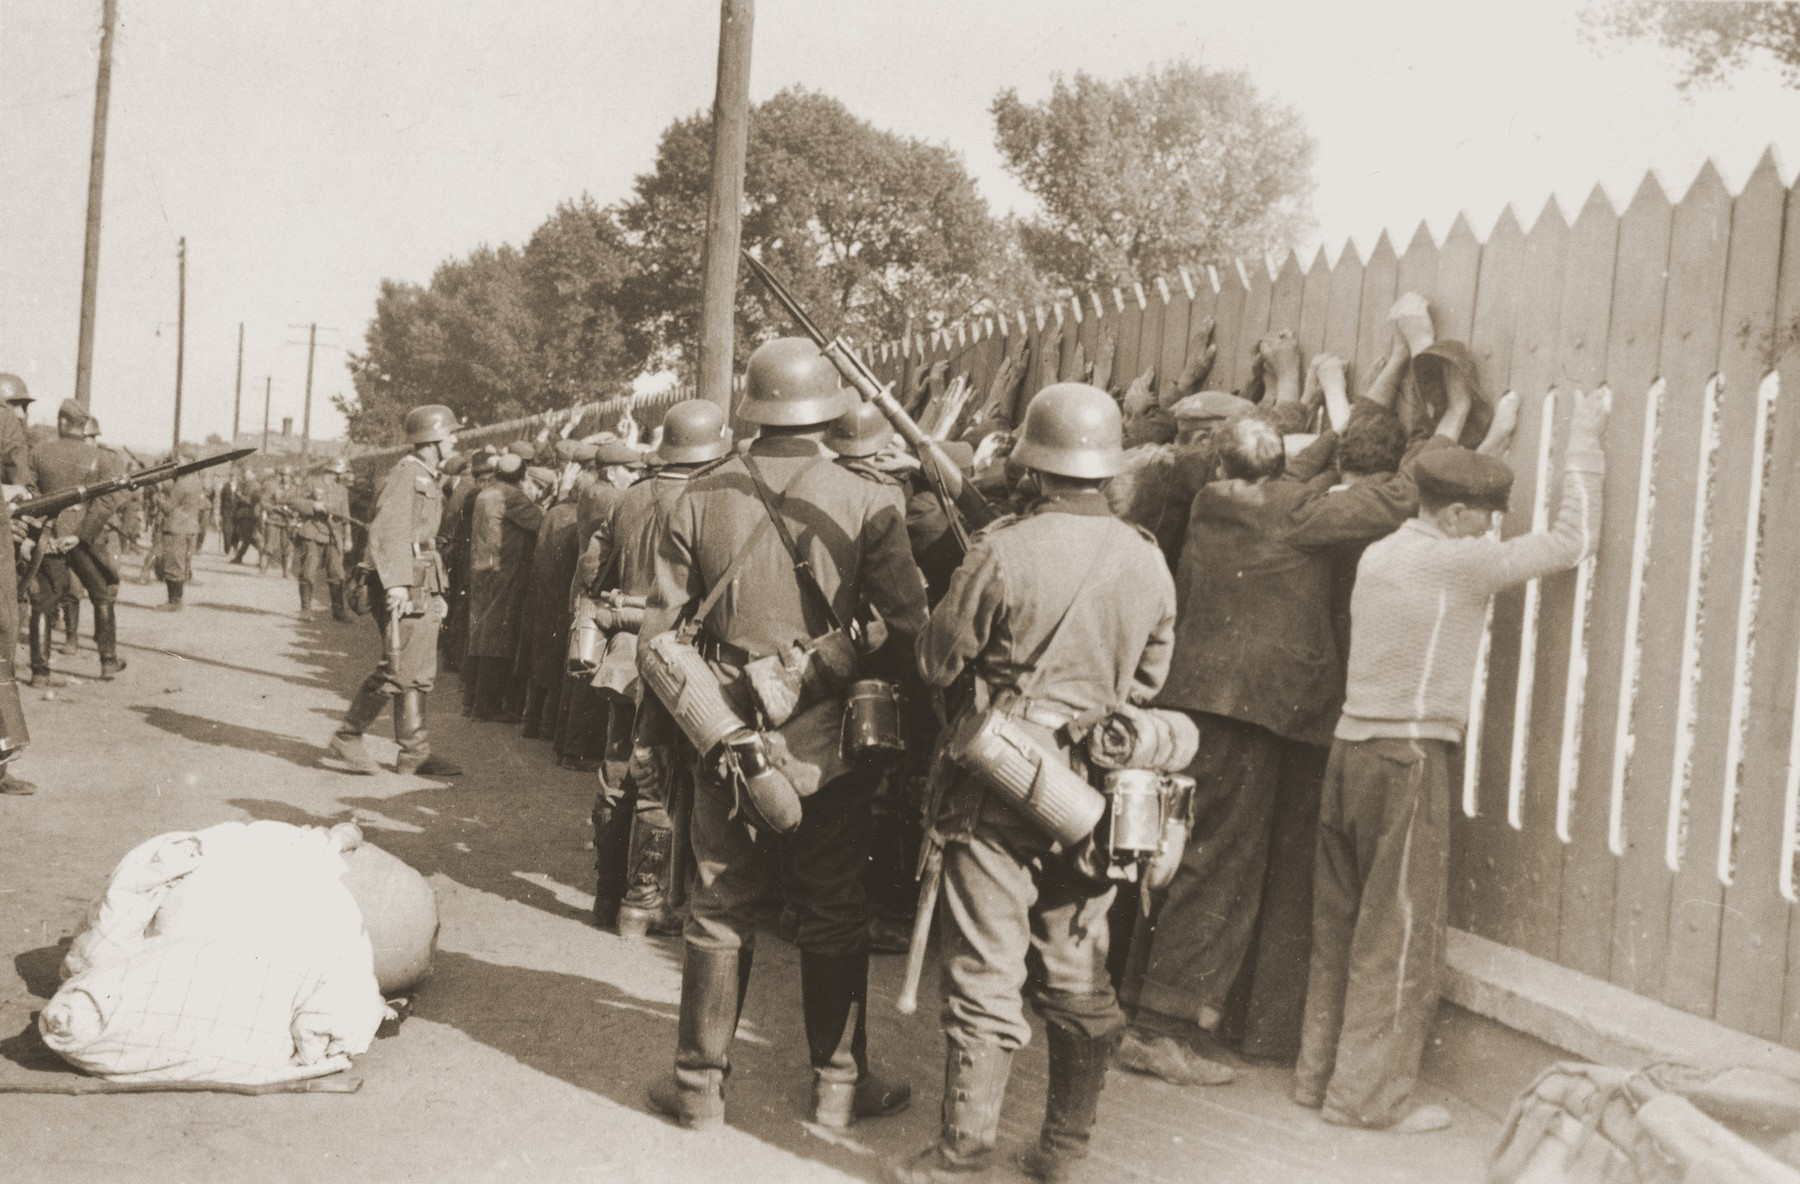 German soldiers round-up a group of Jewish men and line them up against a picket fence in Czestochowa.  One photograph from an album belonging to a member of a Wehrmacht machine gunners' unit, which was found after the war by Lorenzo Hawkins (the donor's grandfather), an American serviceman in Company B, 56th Armored Engineer Battalion.